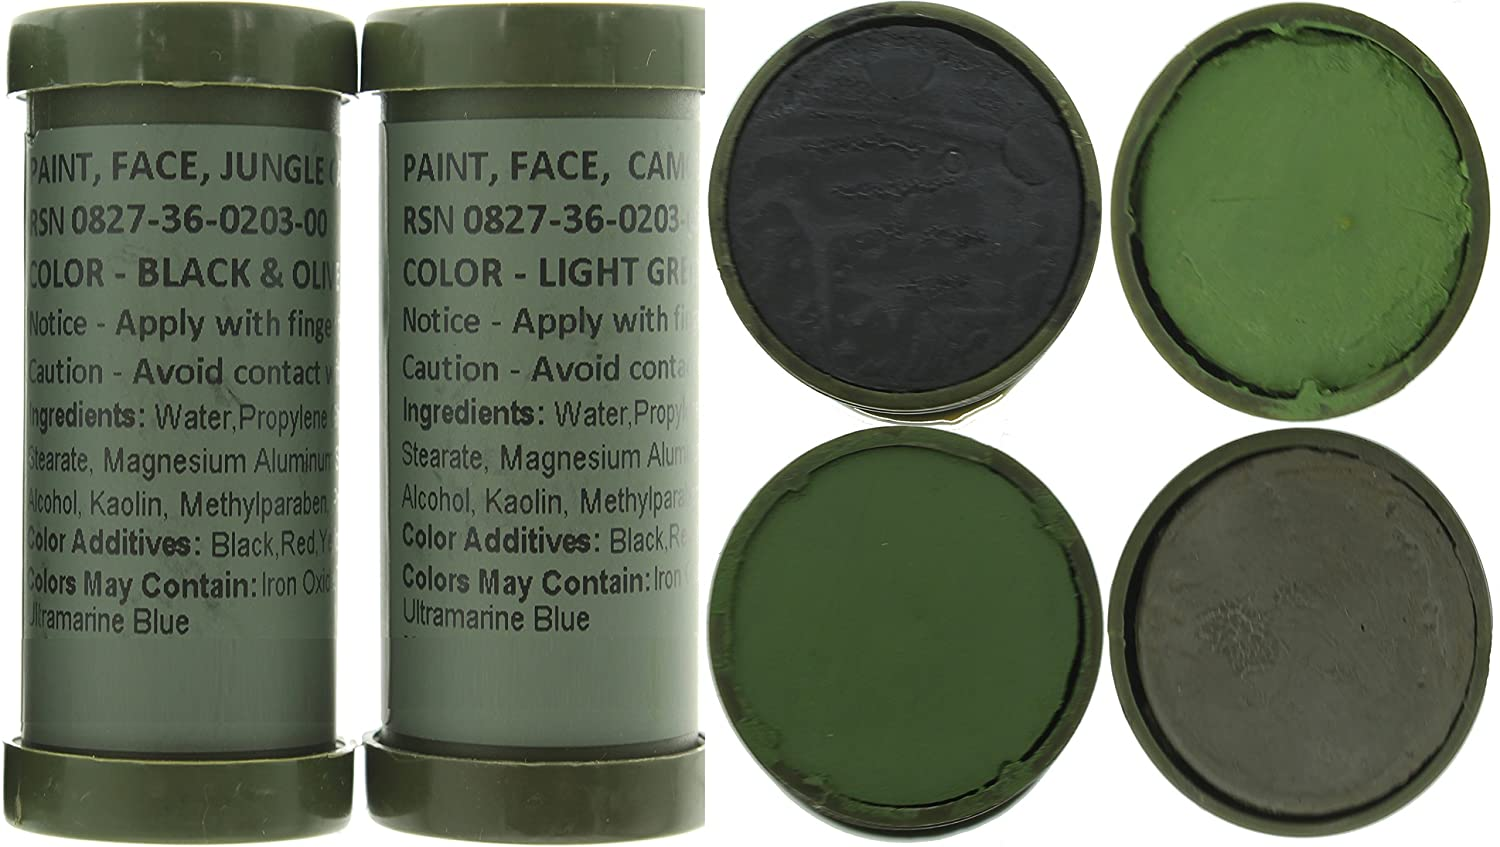 Army Universe Camo Face Paint, NATO Military Camouflage Outdoor Makeup  Jungle Paint Sticks